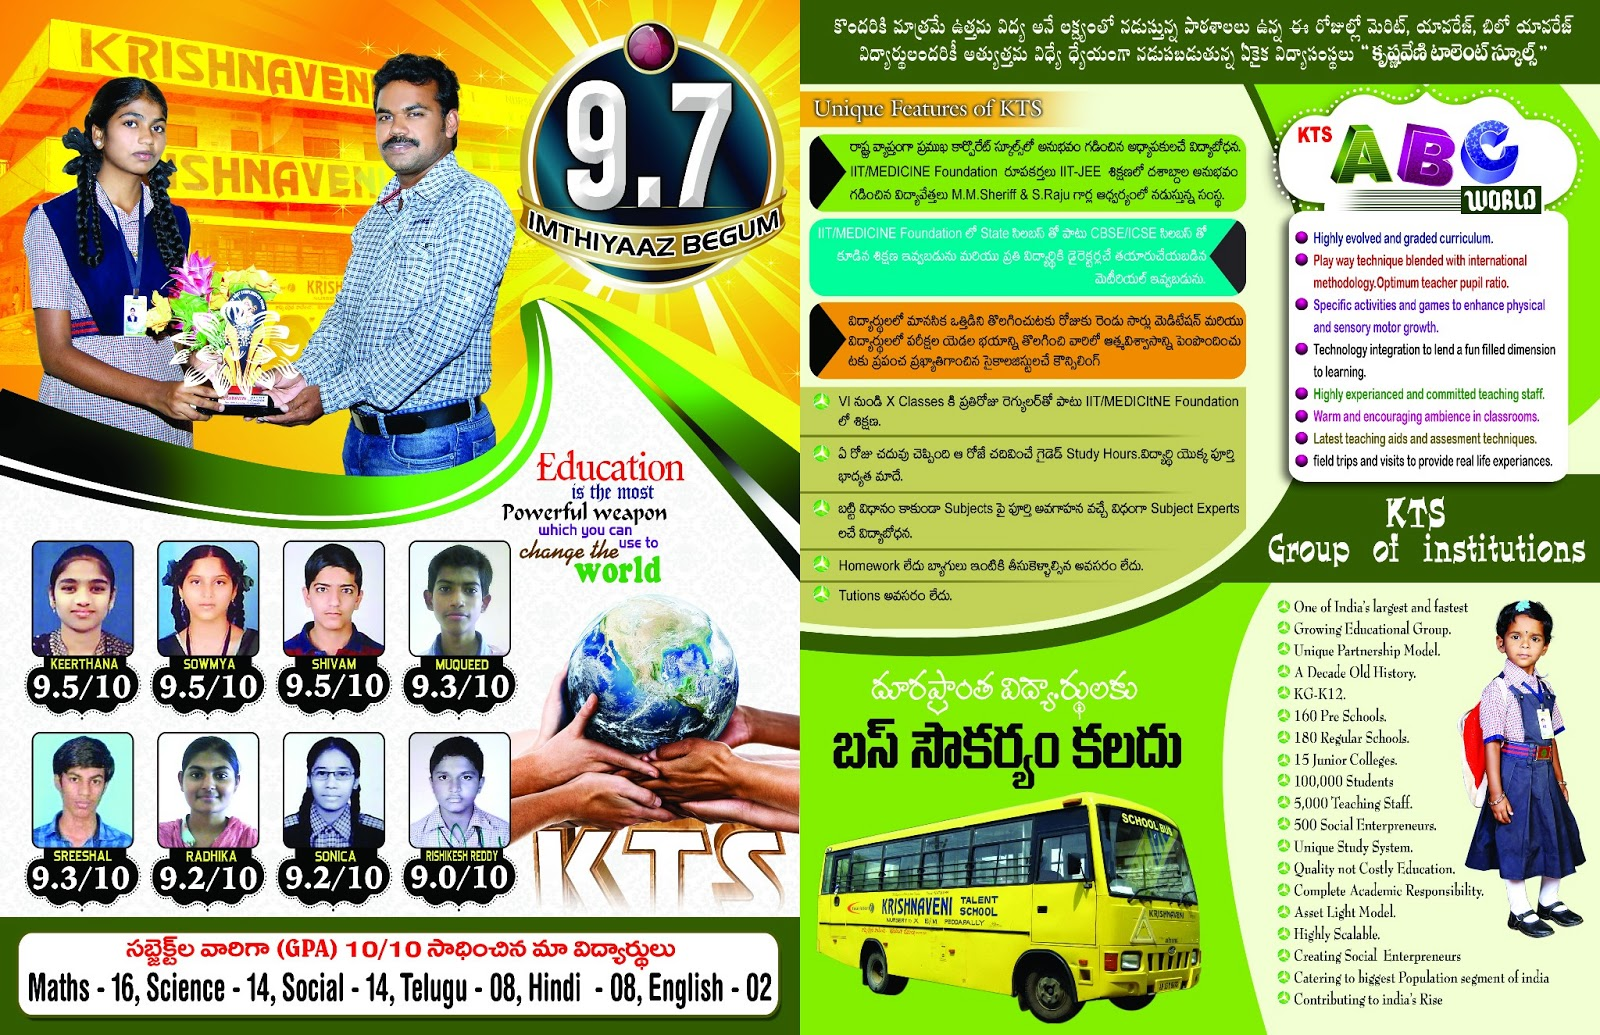 krishnaveni talent school custom brochure design template school brochure design template